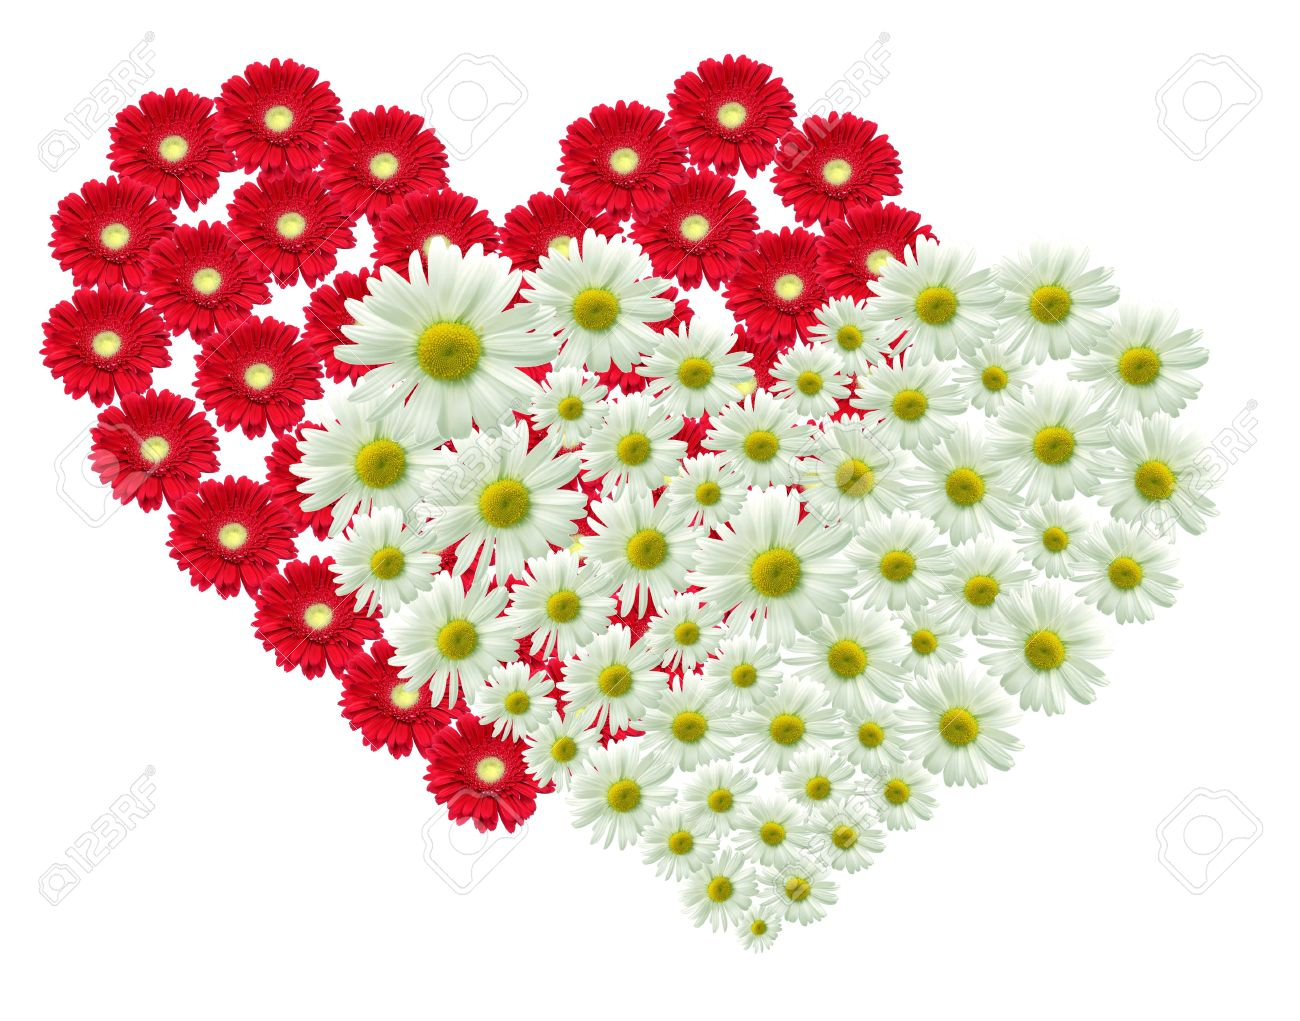 2 big heart made of red and white flowers stock photo picture and rh 123rf com picture of love hearts and flowers picture of love hearts and flowers